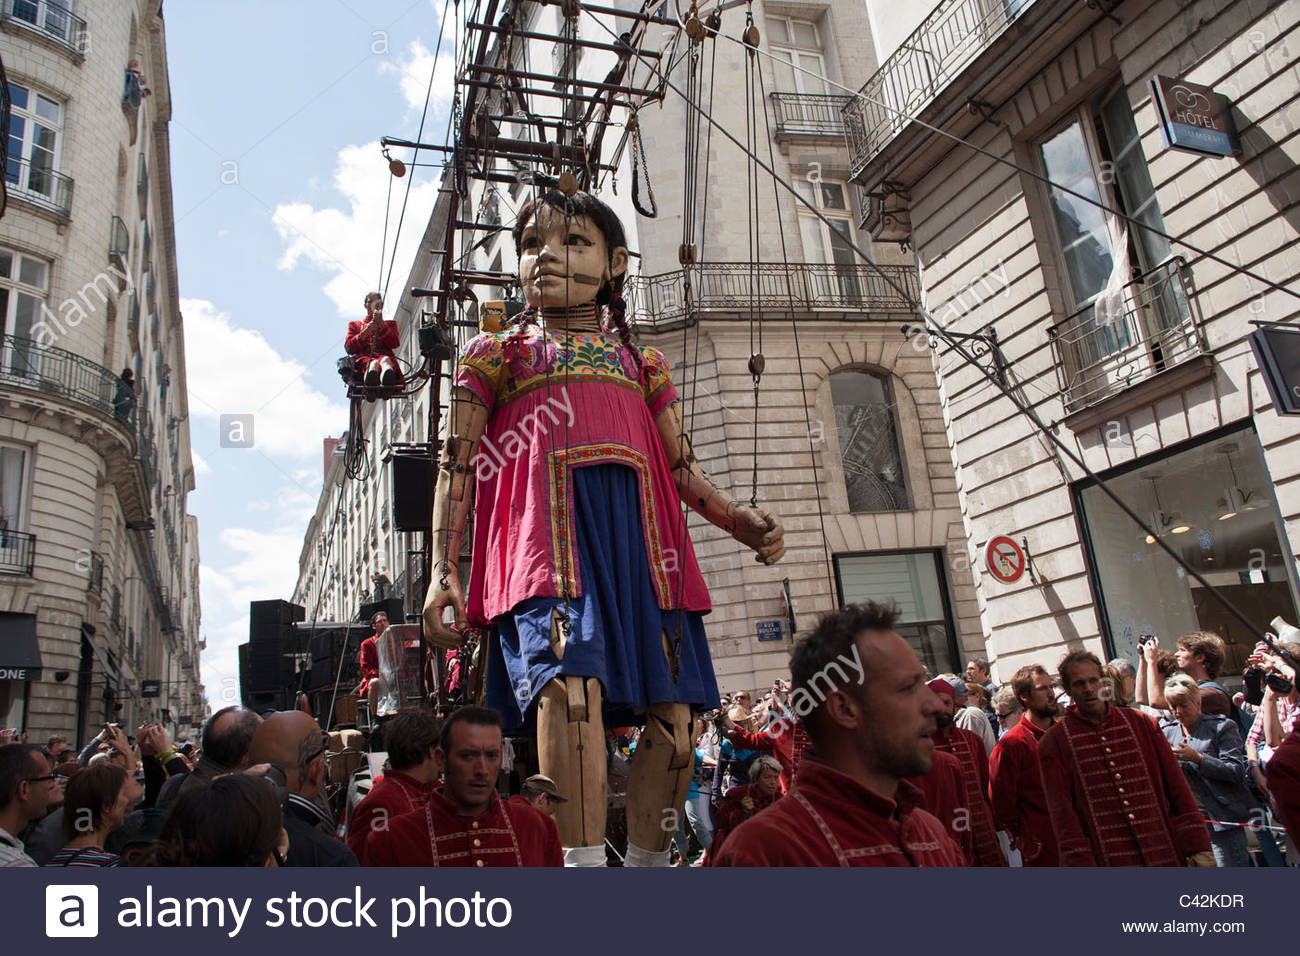 the little giant a giant marionette by royal de luxe walks through stock photo 36938547 alamy. Black Bedroom Furniture Sets. Home Design Ideas